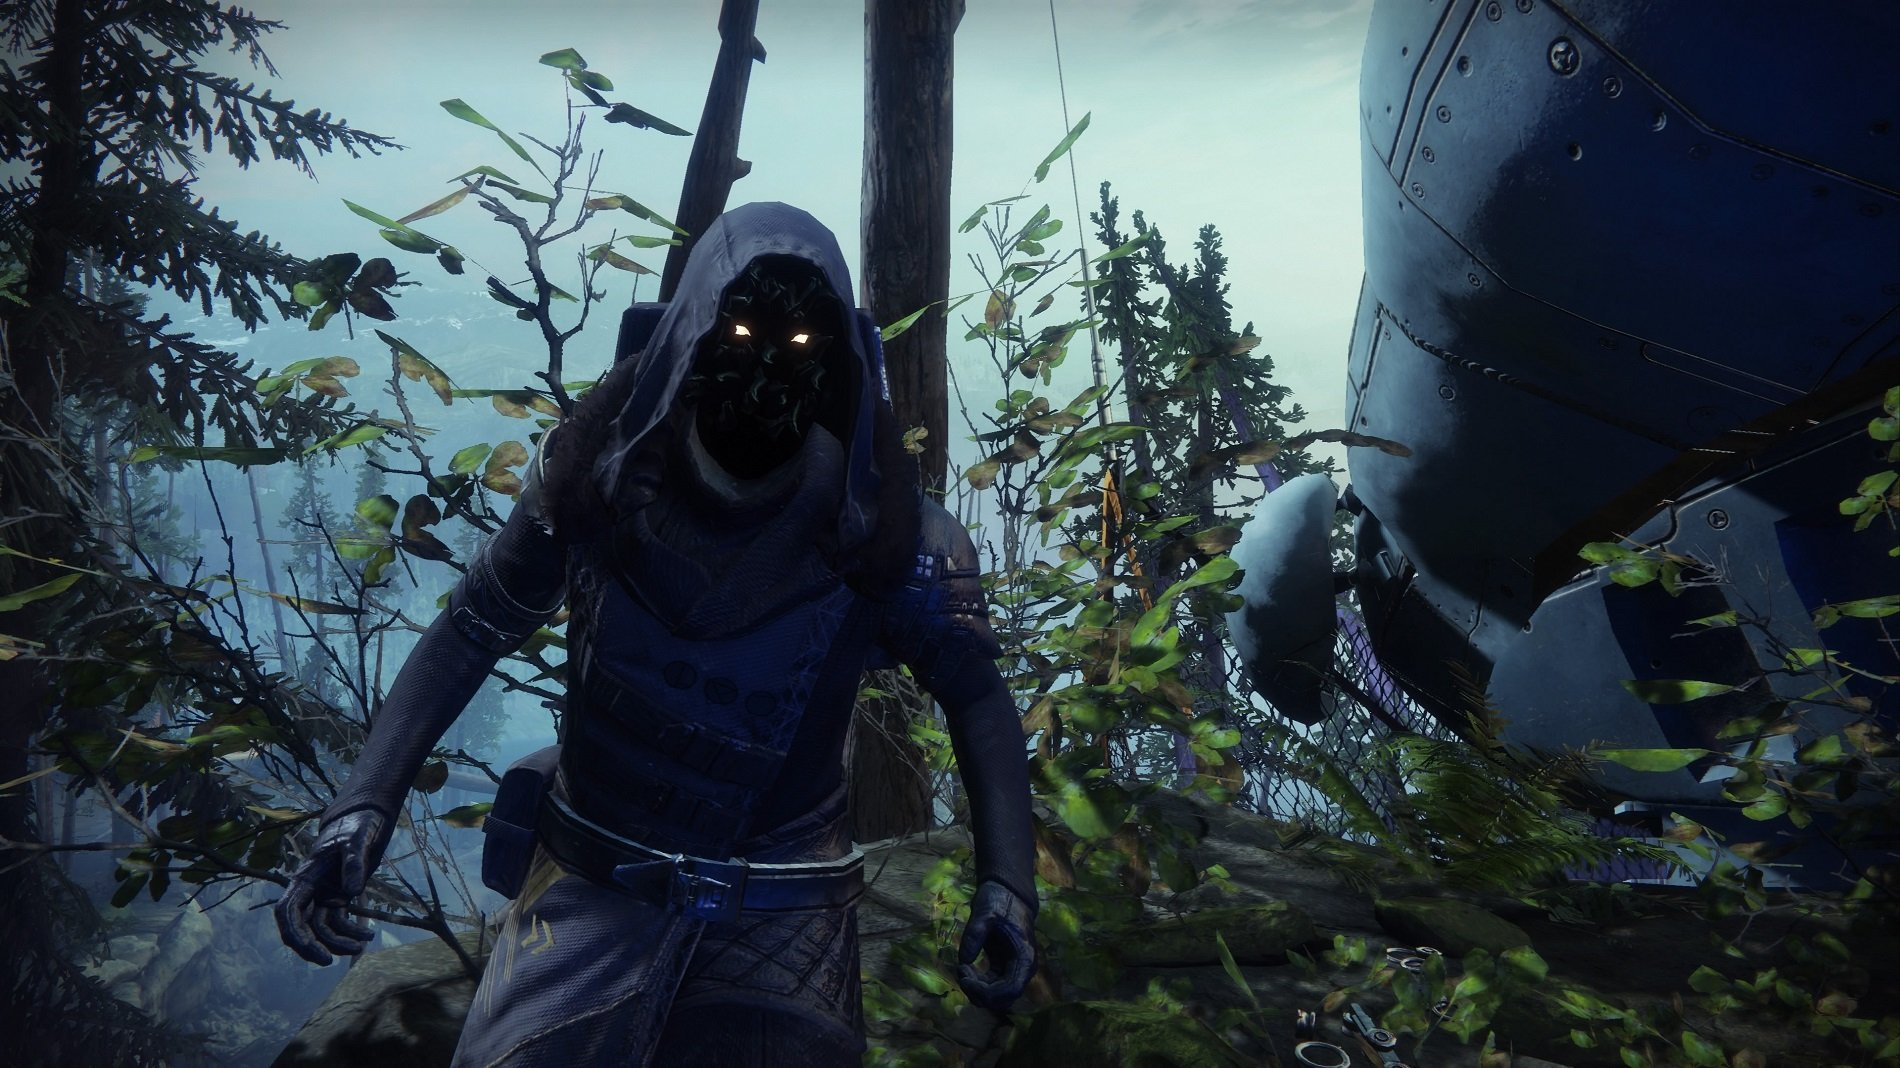 Where to find Xur in Destiny 2 - April 24, 2020